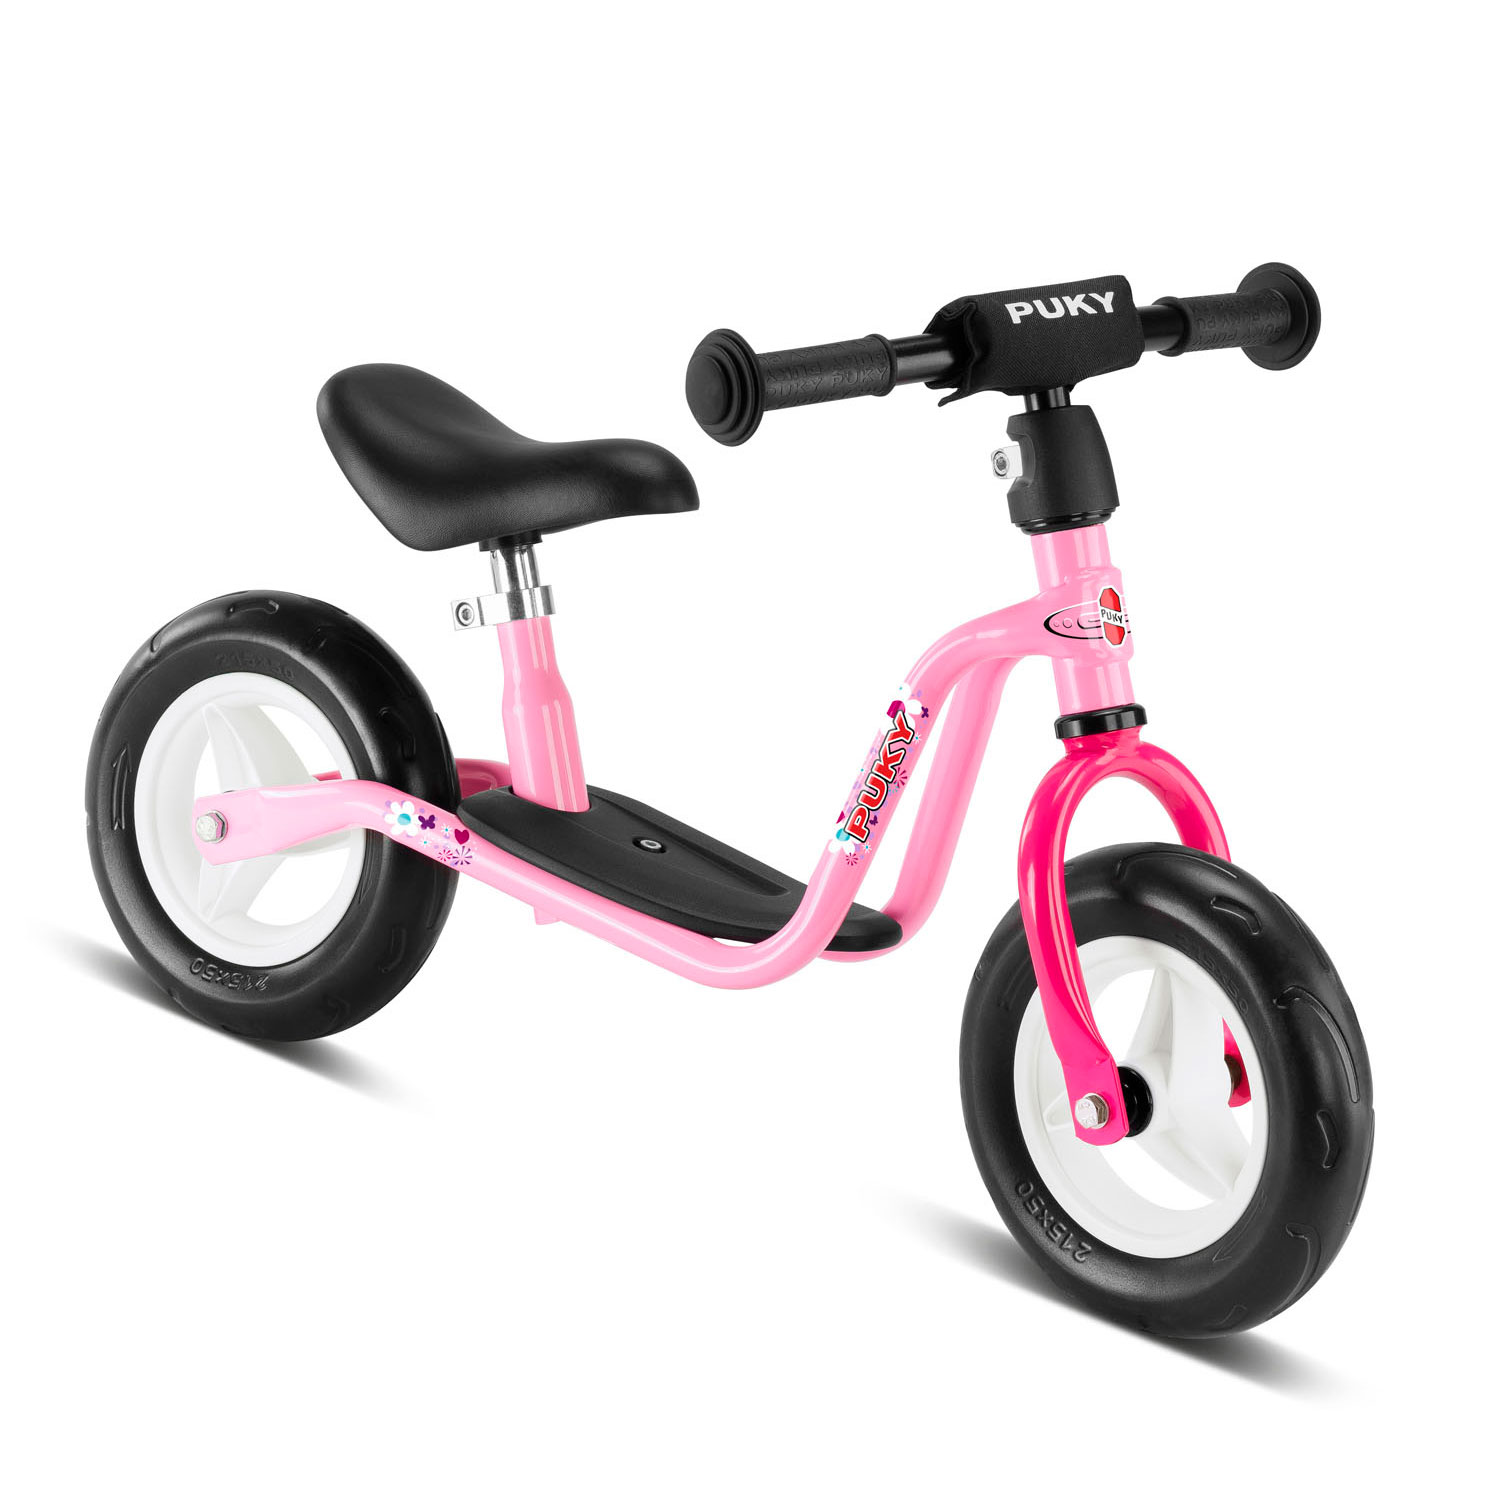 PUKY LR M Loopfiets Medium Roze